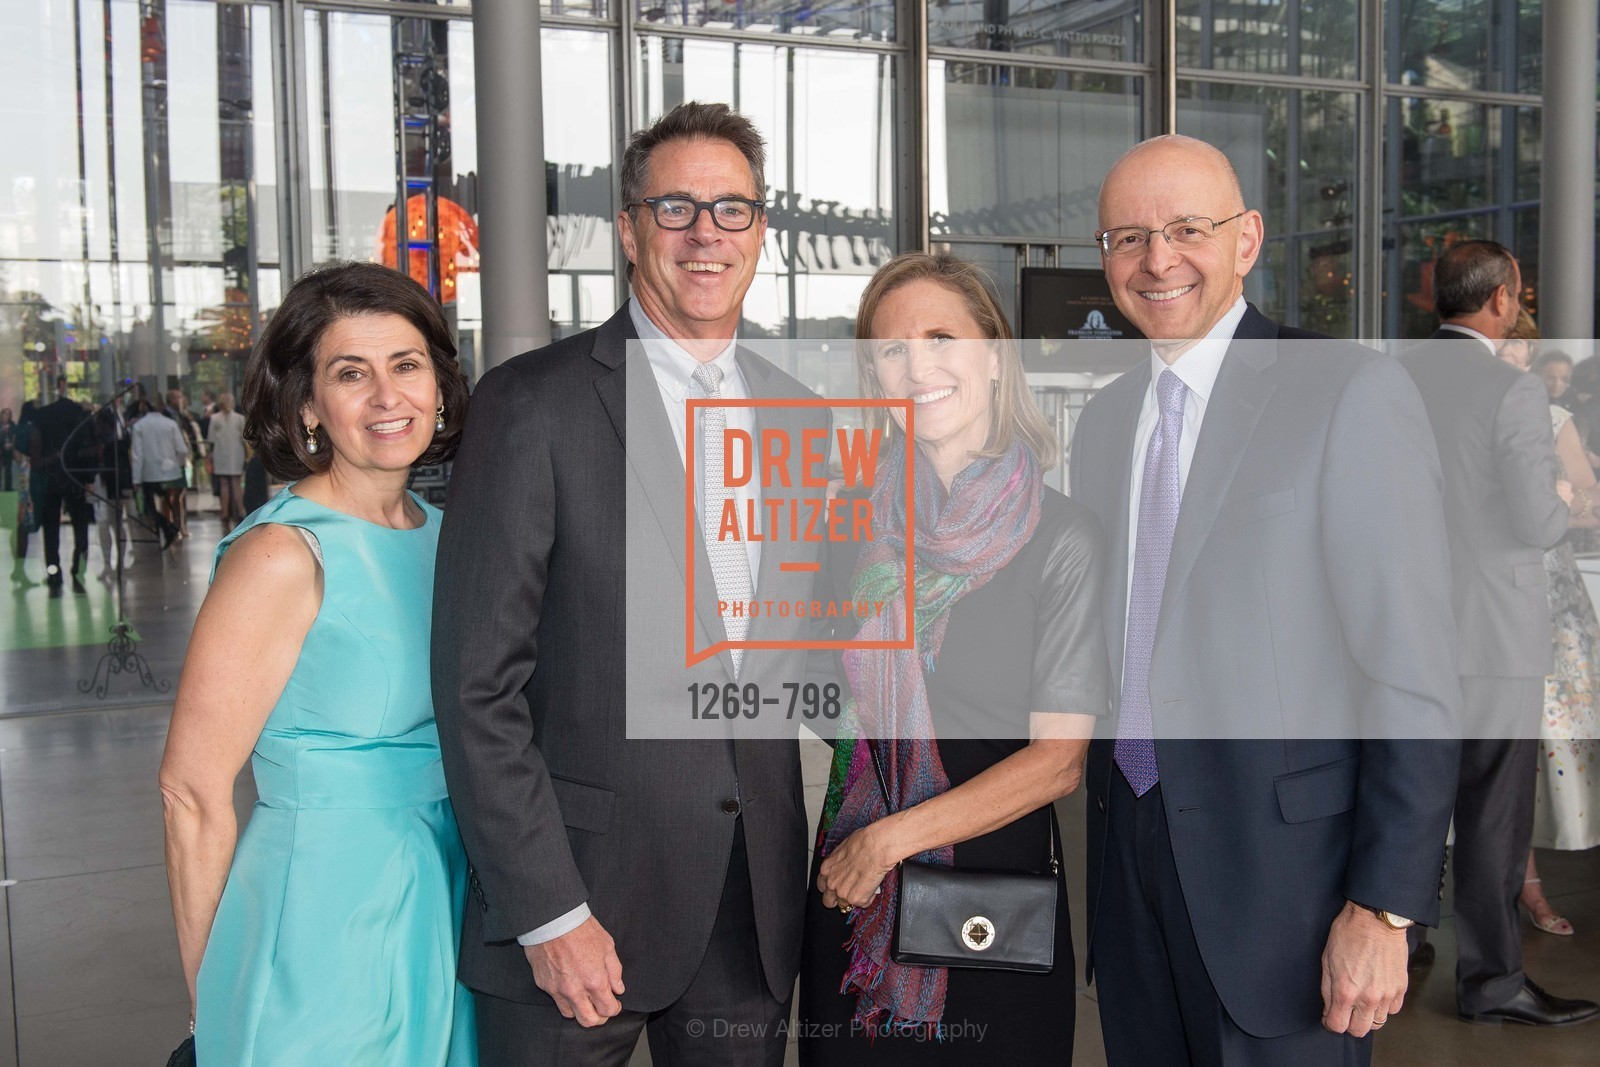 Mary Vascellaro, Will Schultte, Suzanne Schultte, Jerome Vascellaro, CALIFORNIA ACADEMY OF SCIENCES - Big Bang Gala 2015, US, April 24th, 2015,Drew Altizer, Drew Altizer Photography, full-service agency, private events, San Francisco photographer, photographer california